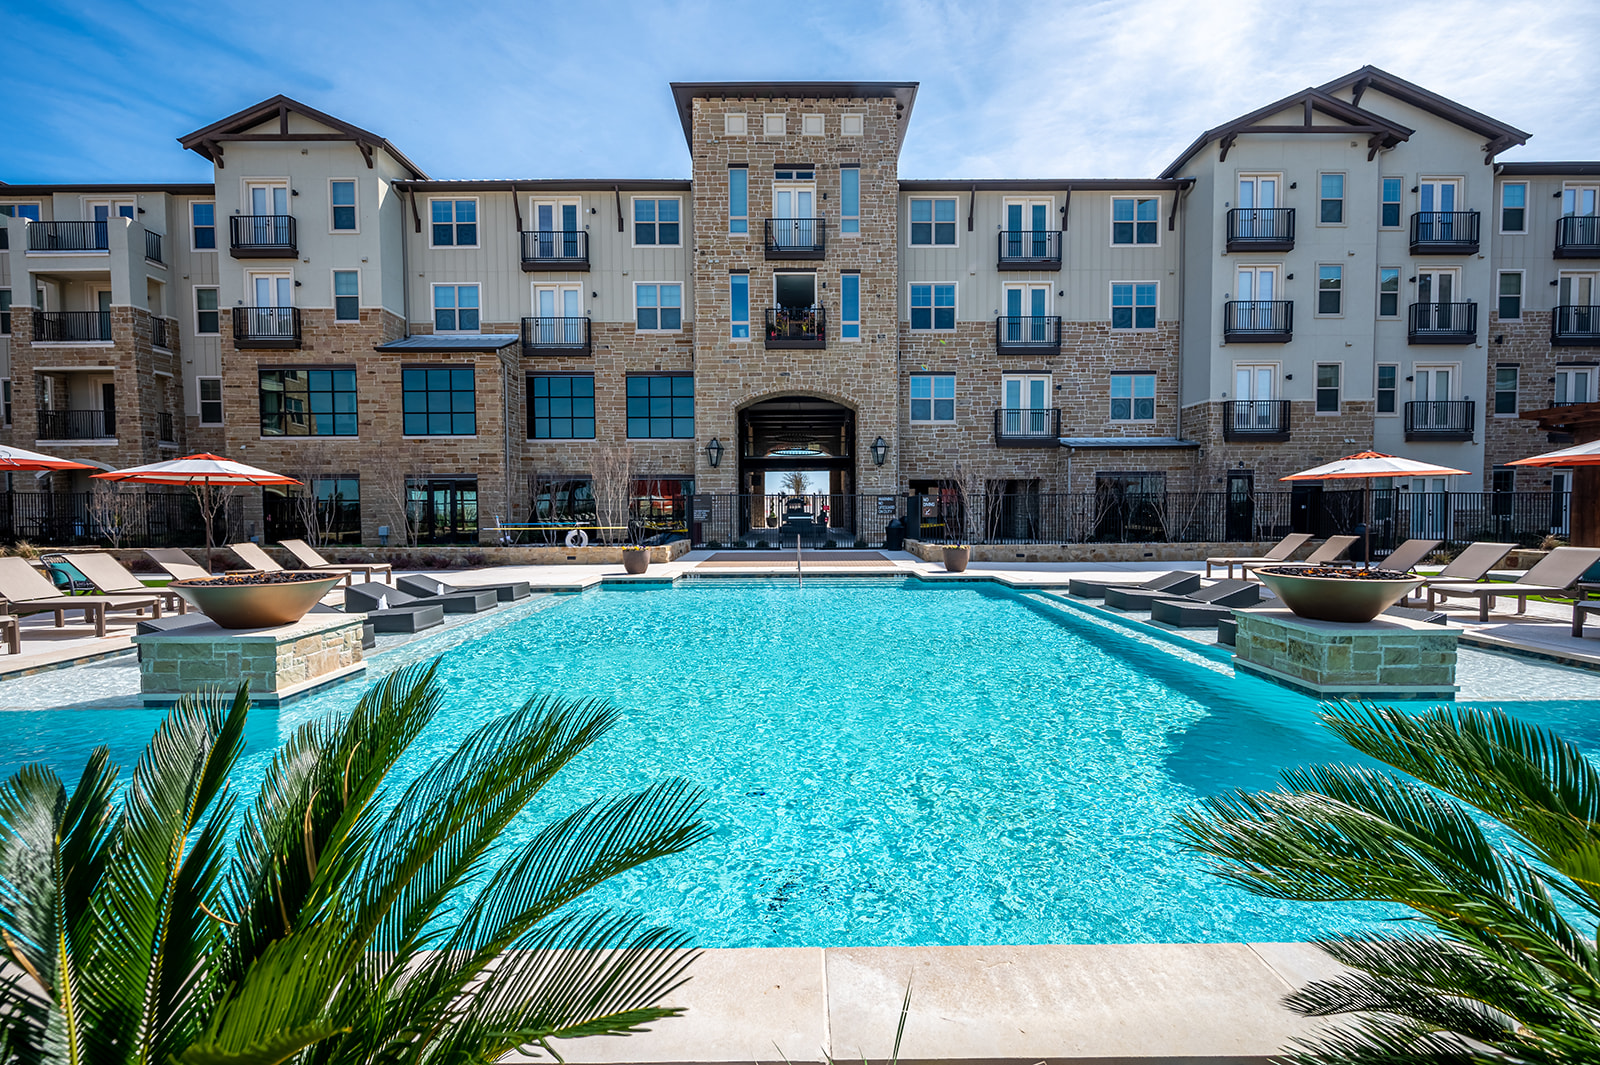 KWA Construction Completes Denton's State-of-the-Art Apartment Community The Village at Rayzor Ranch